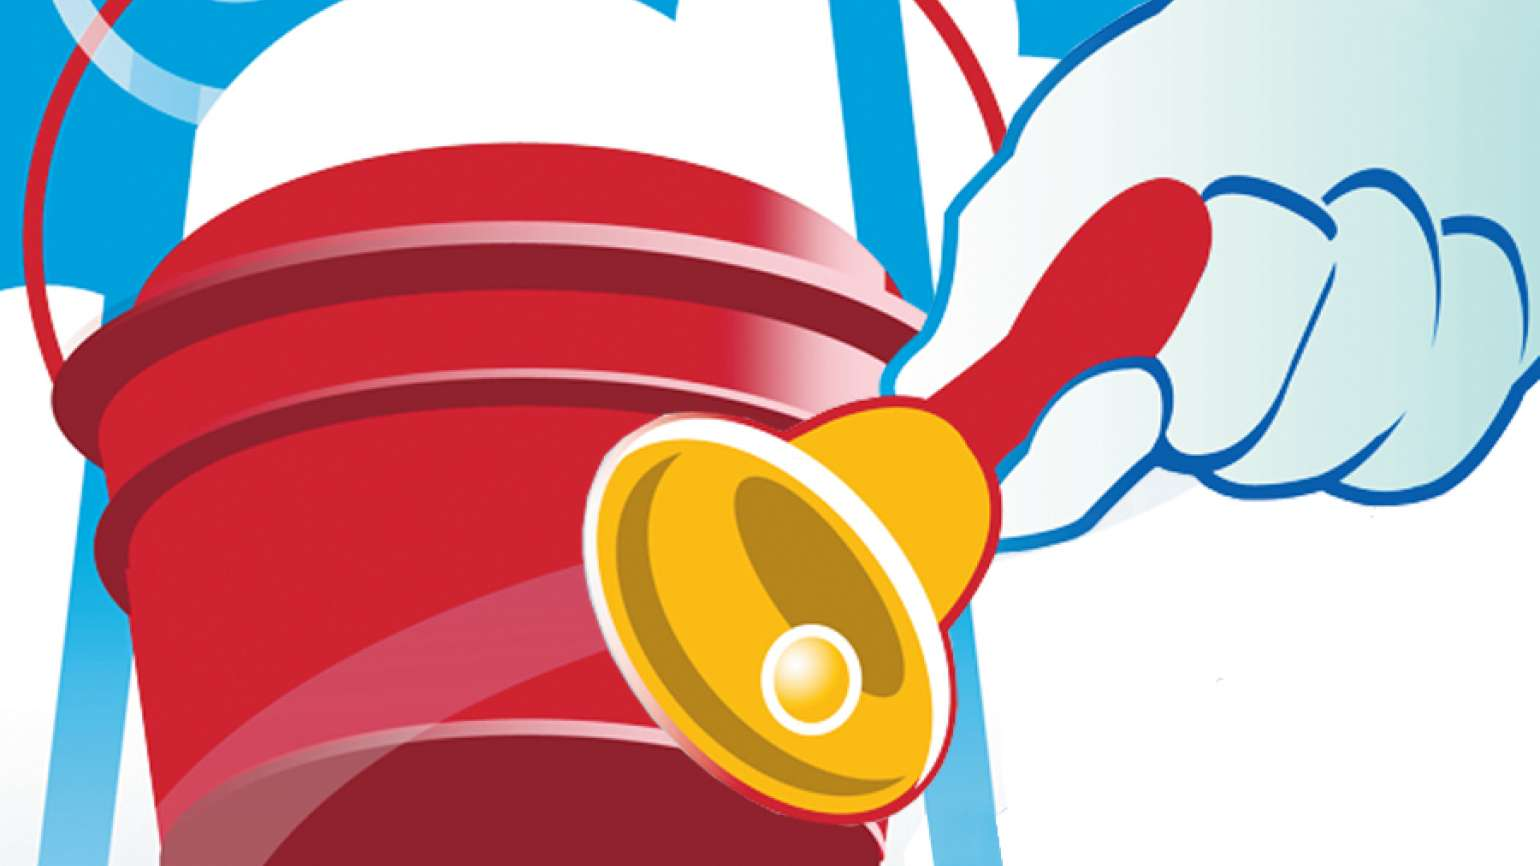 An artist's rendering of a gloved hand ringing a golden bell by a red pail